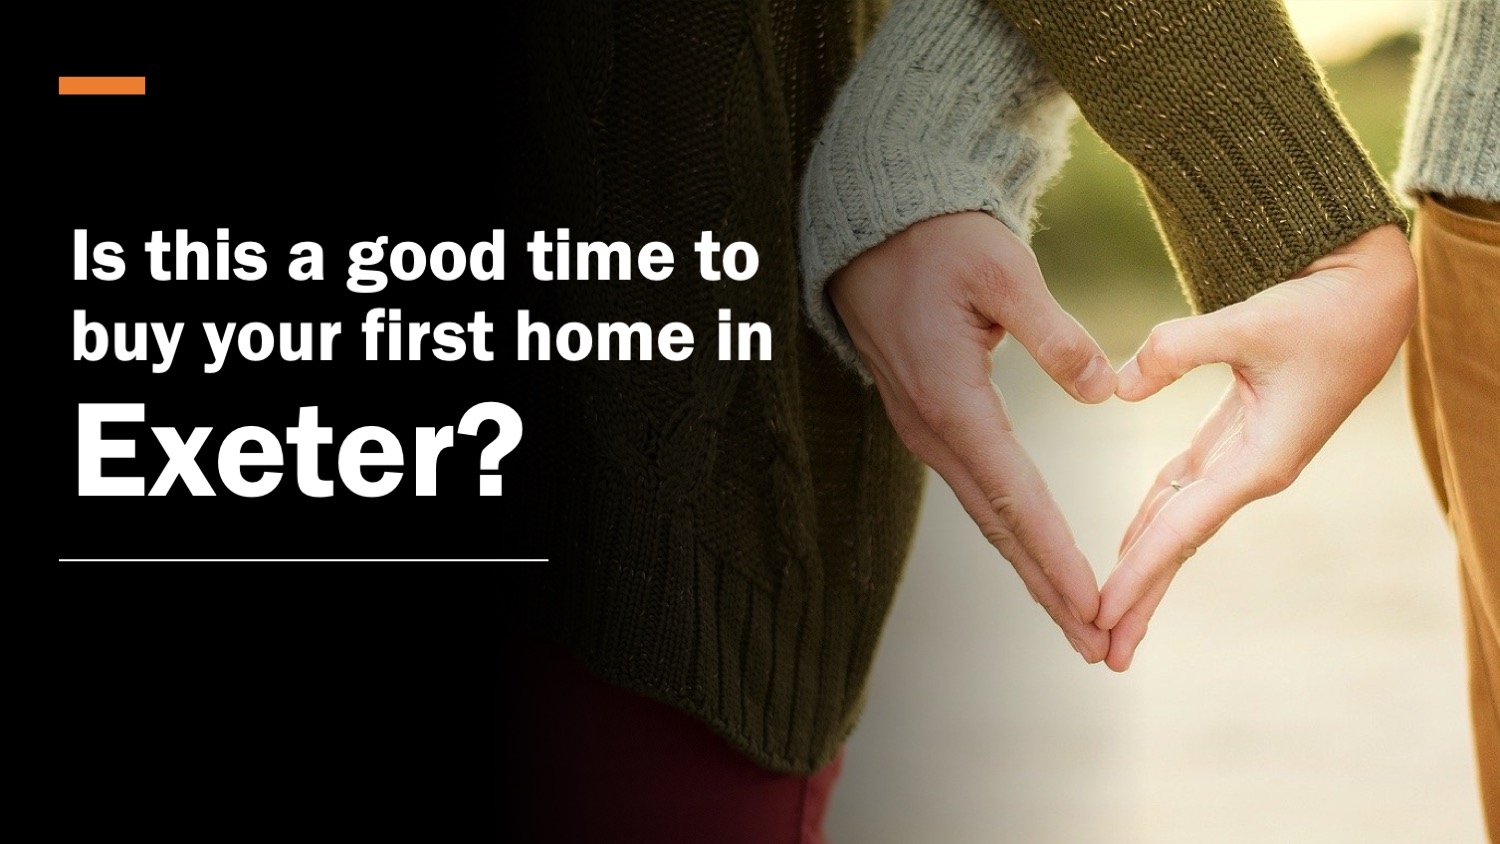 Is This a Good Time to Buy Your First Home in Exeter?